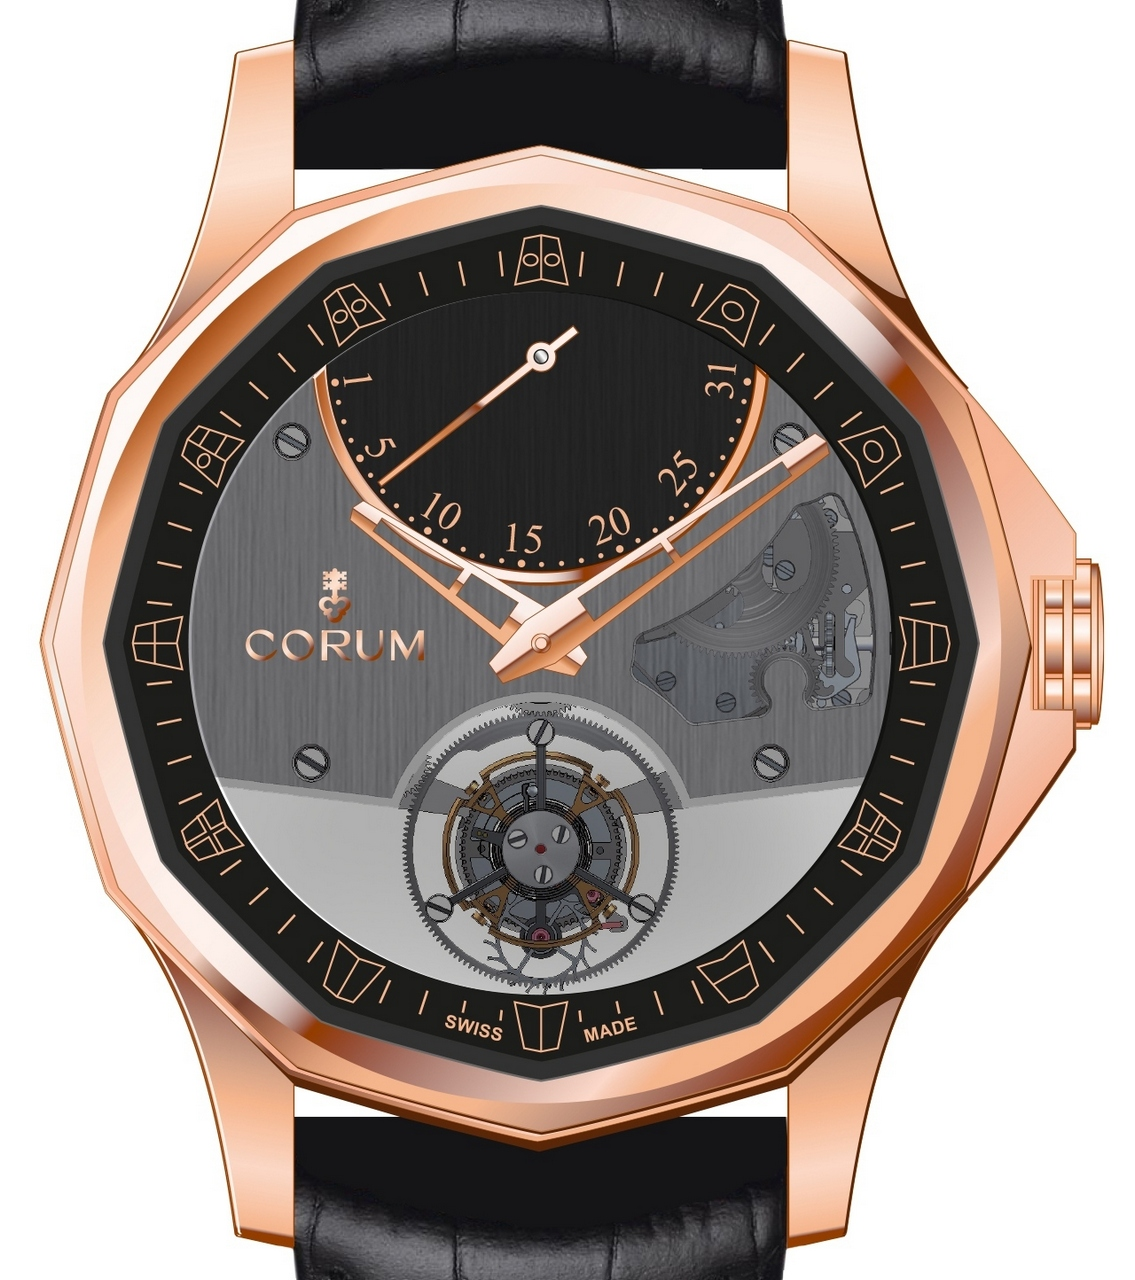 anteprima-baselworld-2015-corum-admirals-cup-legend-42-flying-tourbillon_0-100_1